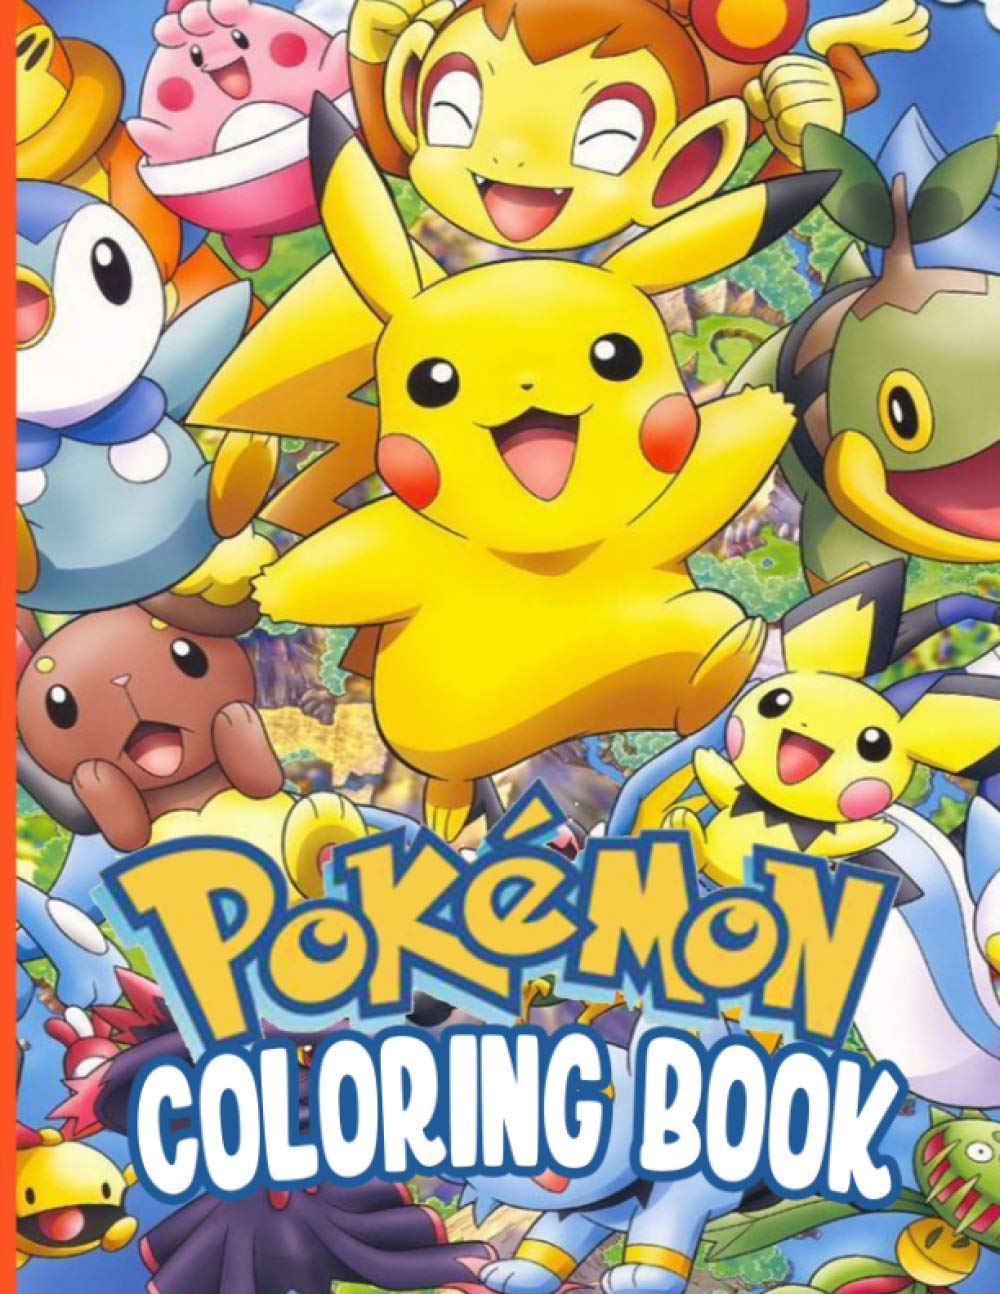 A Flawless Coloring Book For Kids With Unique Images Of Pokemon To Kick Back And Have Fun